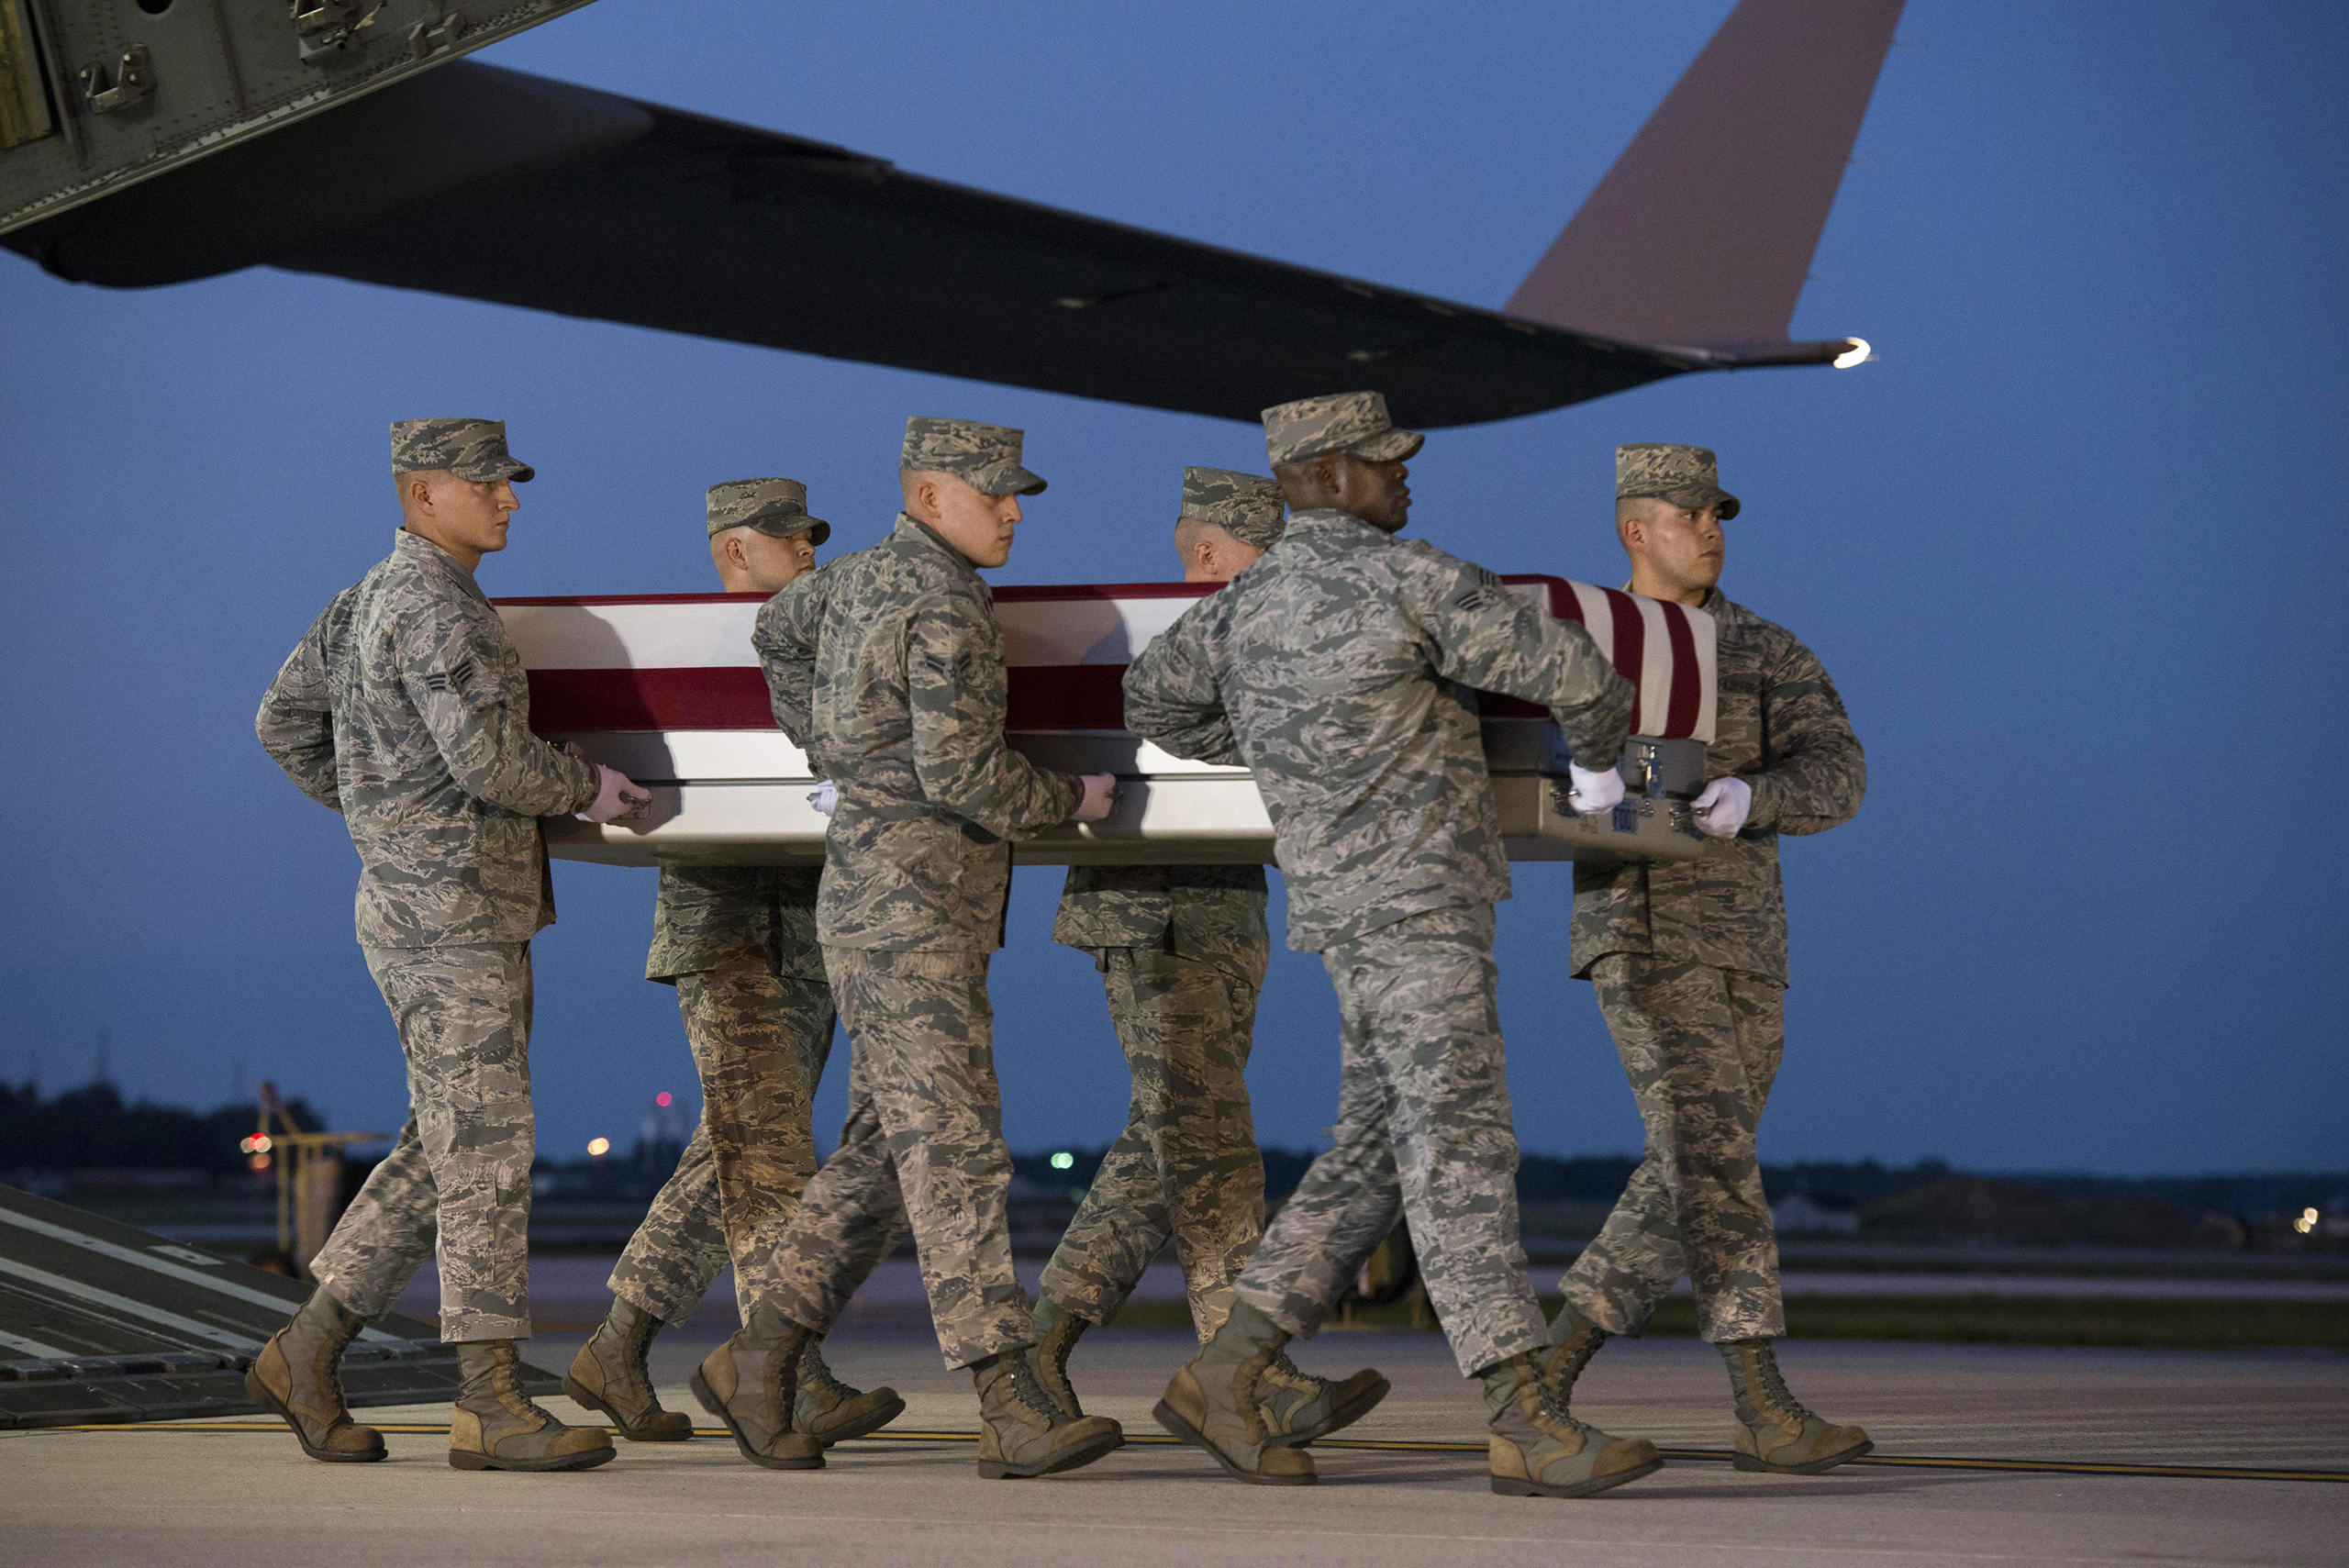 The body of Major Troy Gilbert returns to U.S. soil at Dover AirForce Base in Delaware in October after being held by Iraqis since 2006